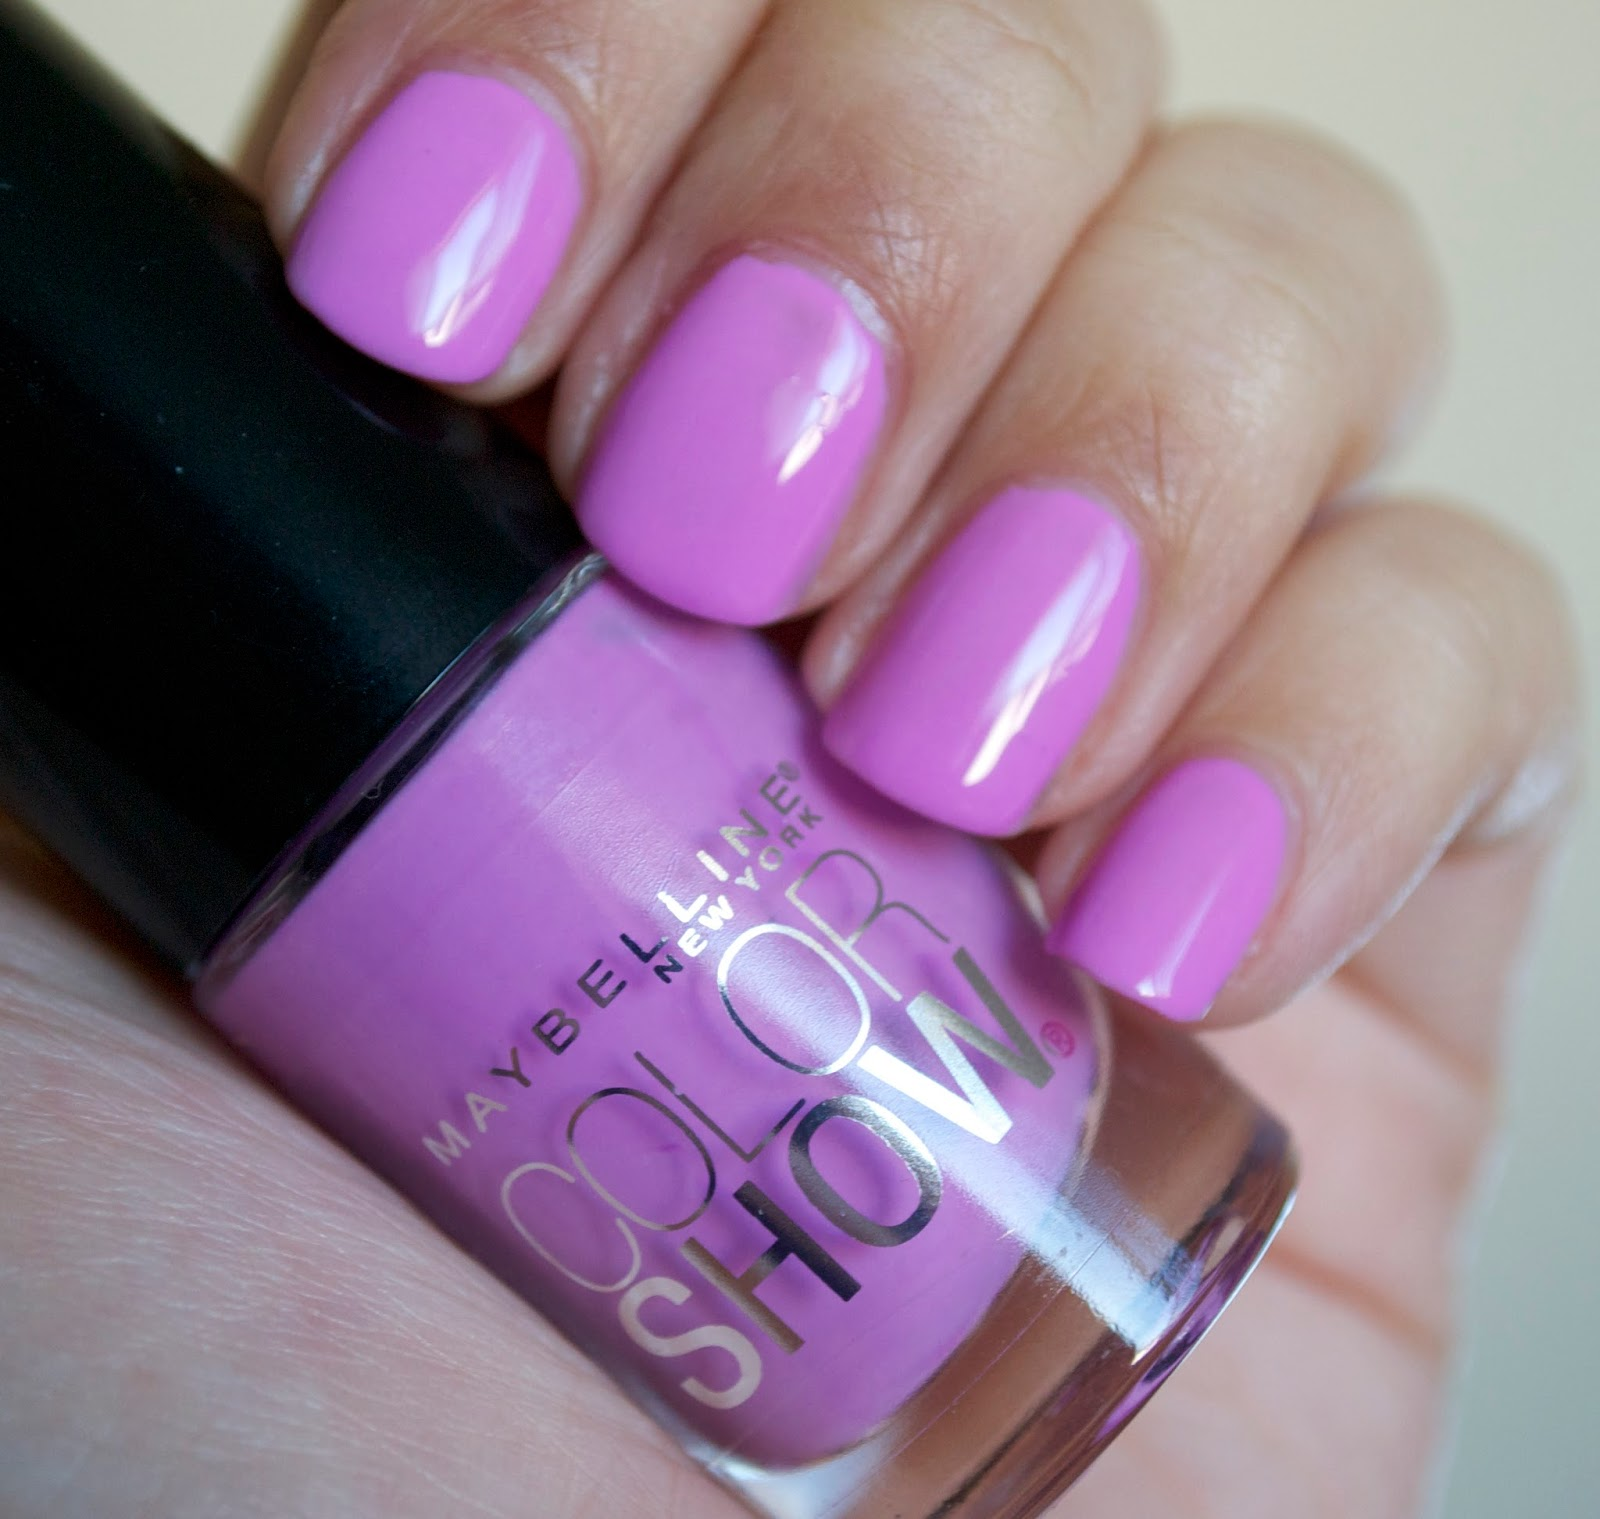 Aquaheart Maybelline Color Show Nail Lacquers 4 Shades